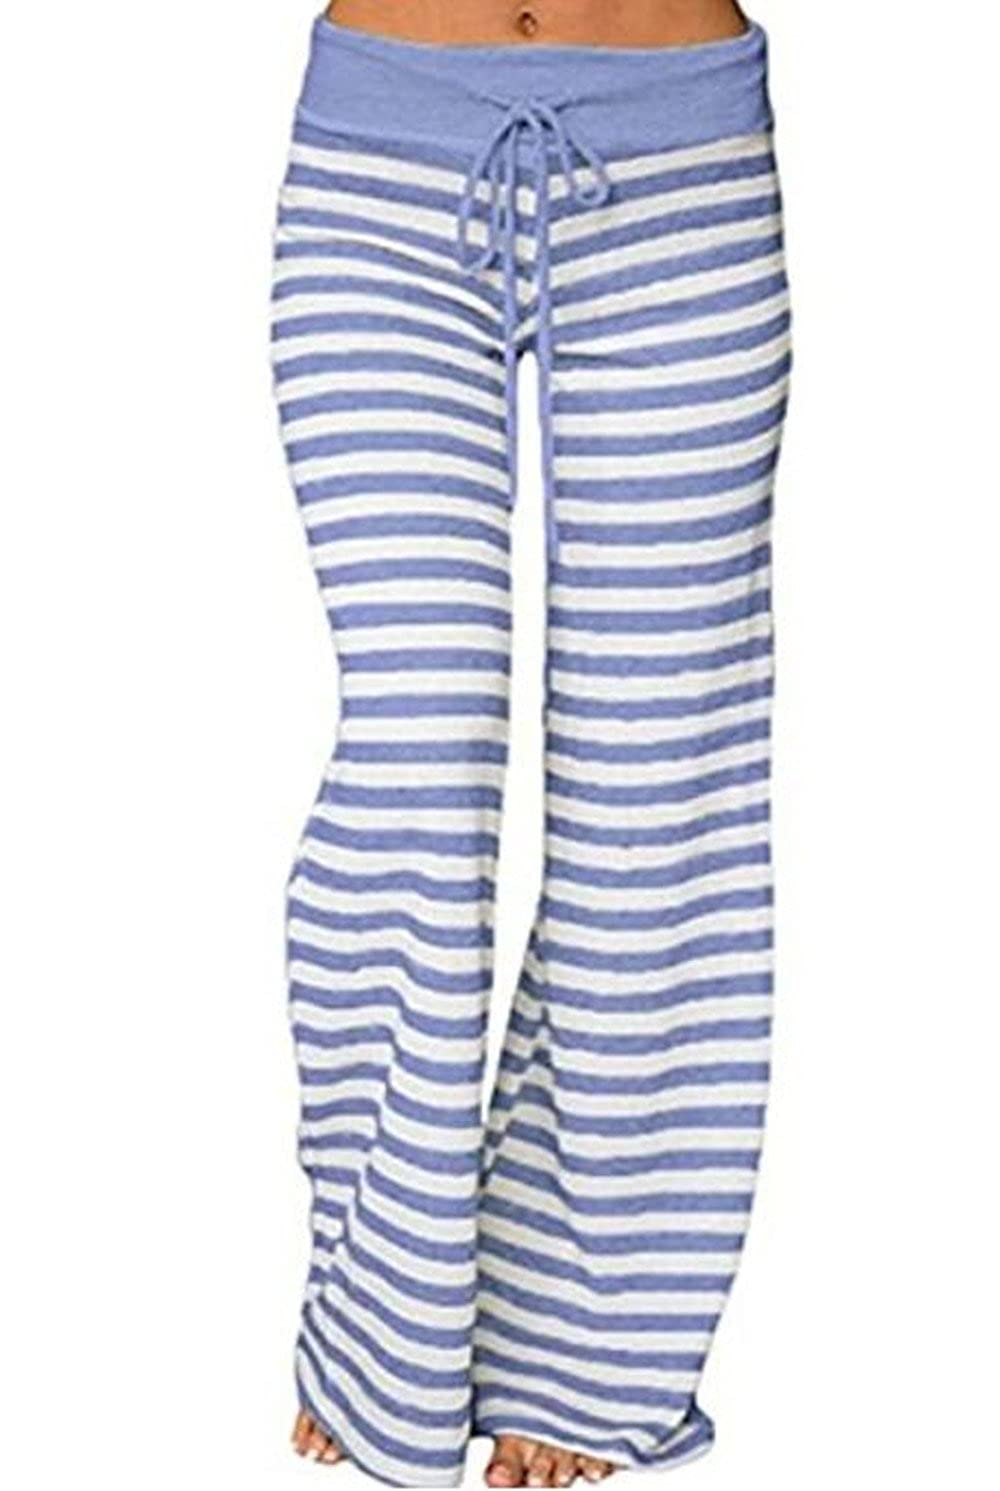 bluee 1 pinklux Women's Stretch Comfy High Waist Drawstring Wide Leg Polka Striped Pajama Pants Lounge